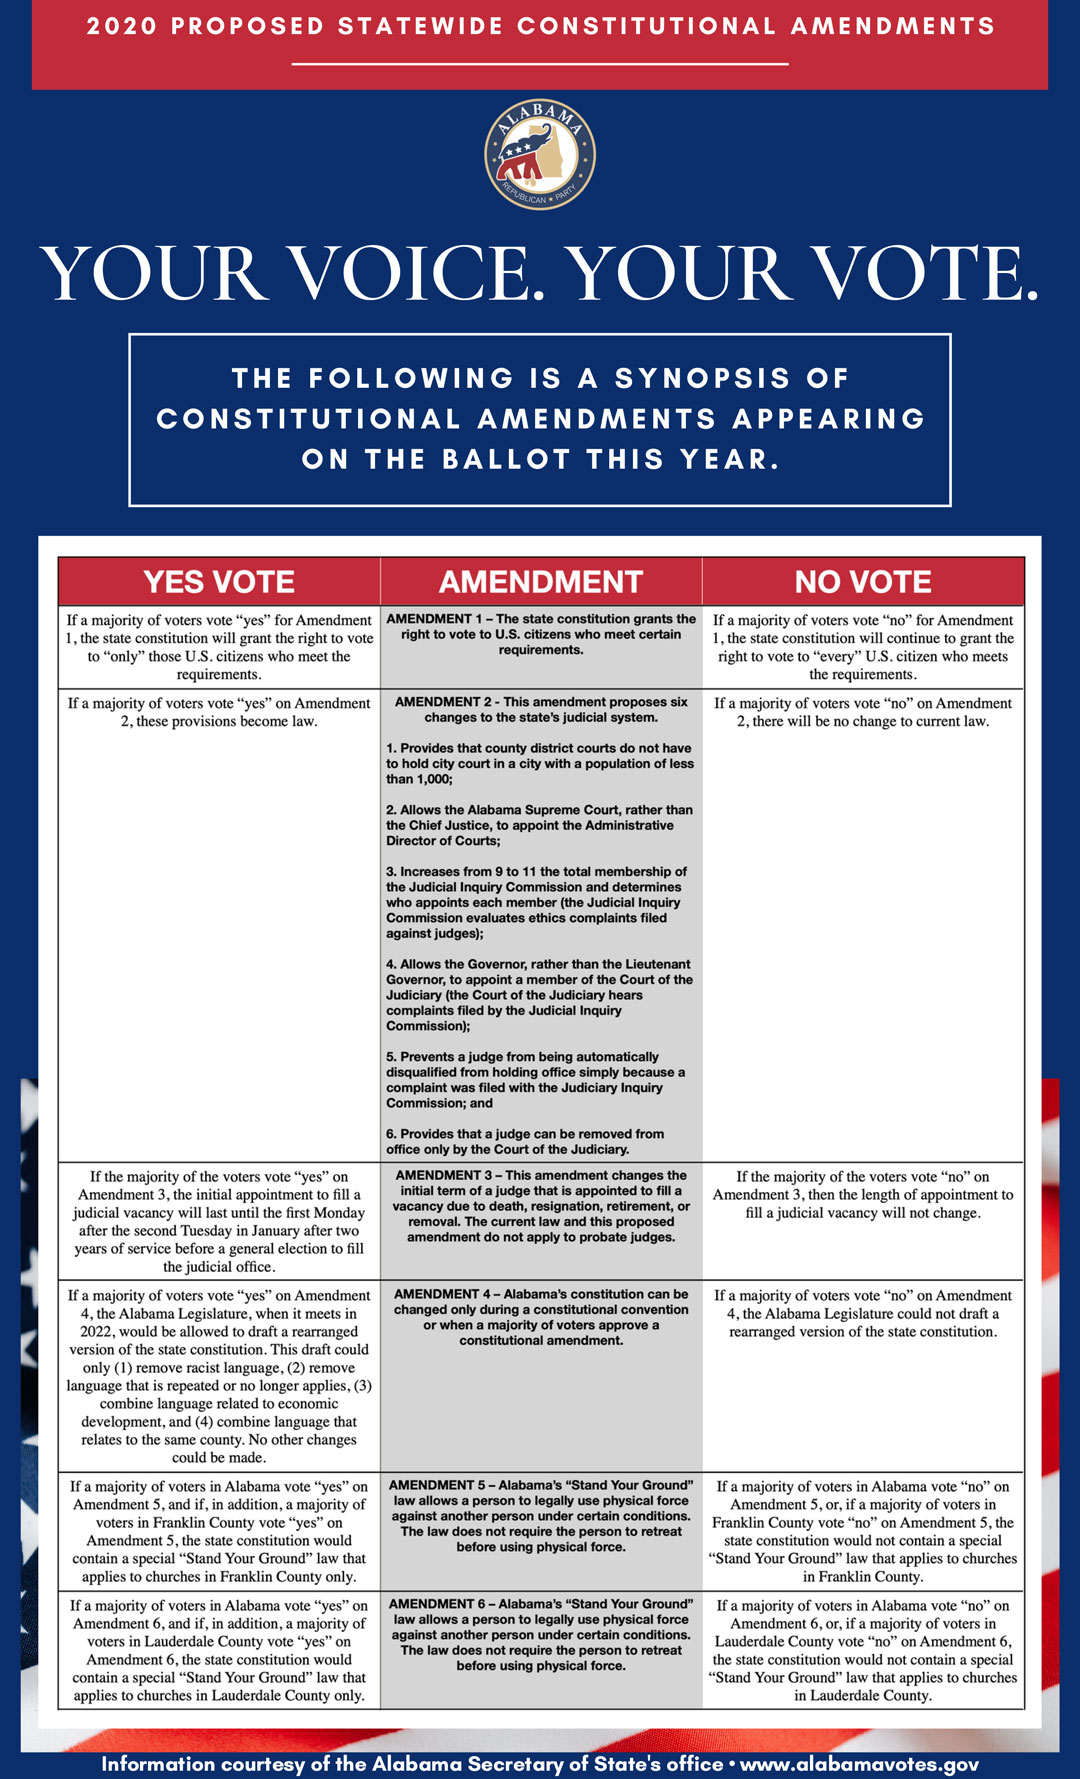 Alabama GOP 2020 Guide to Statewide Constitutional Amendments